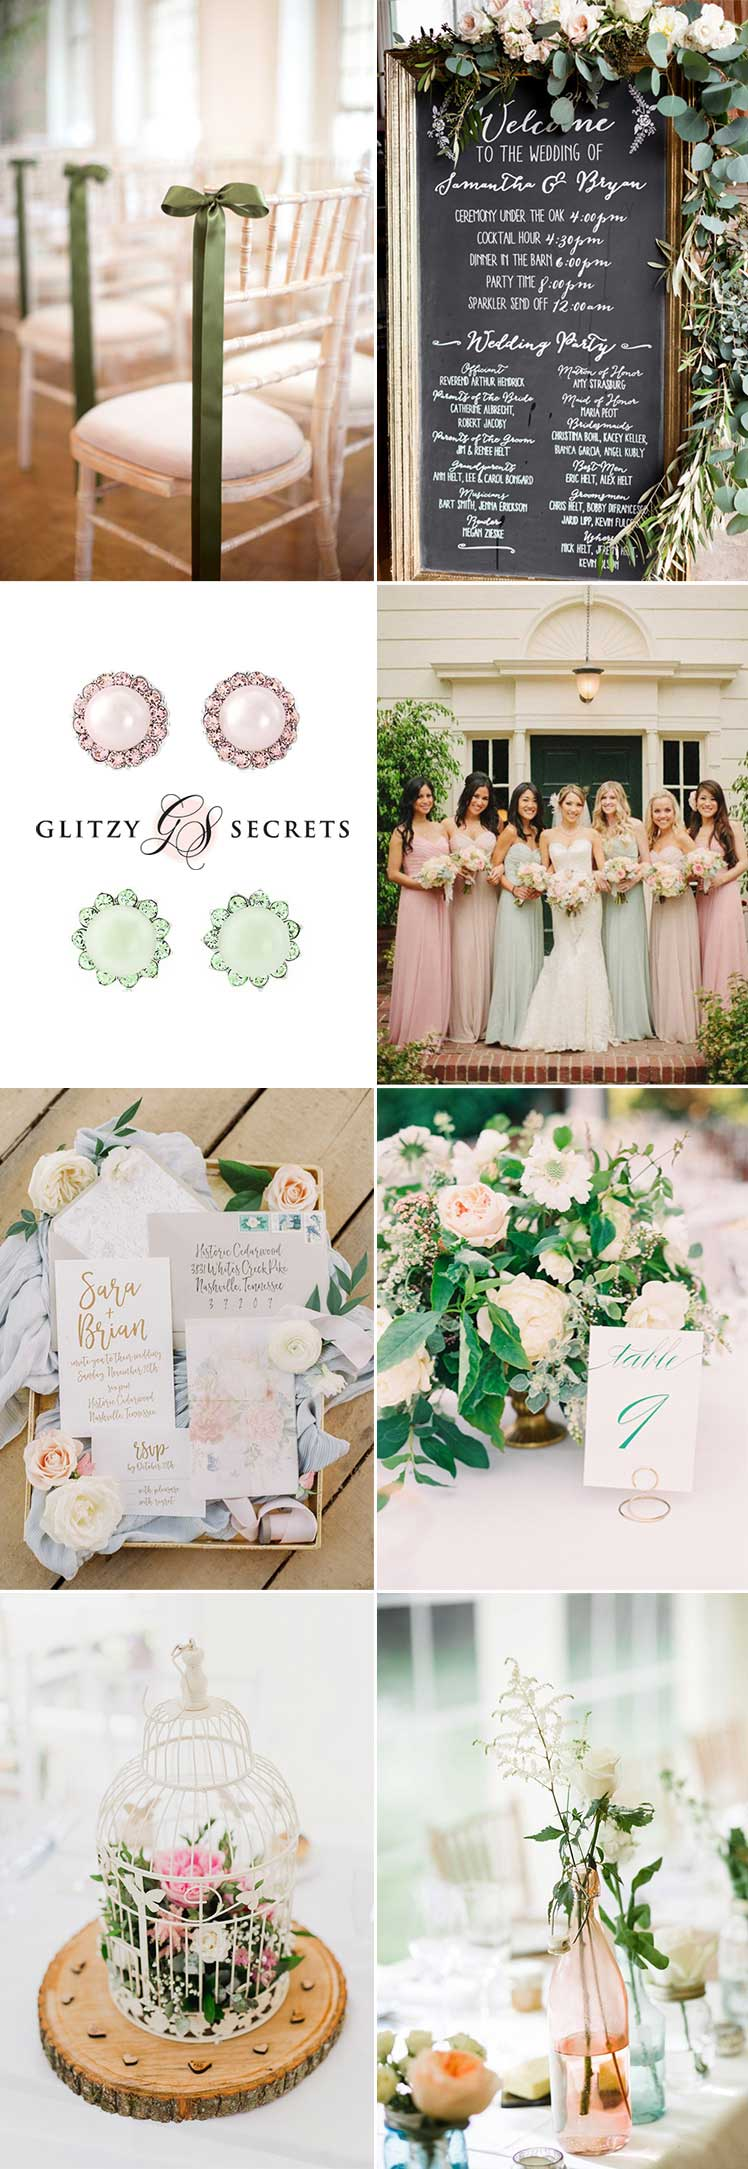 Pastal Pink and green wedding ideas